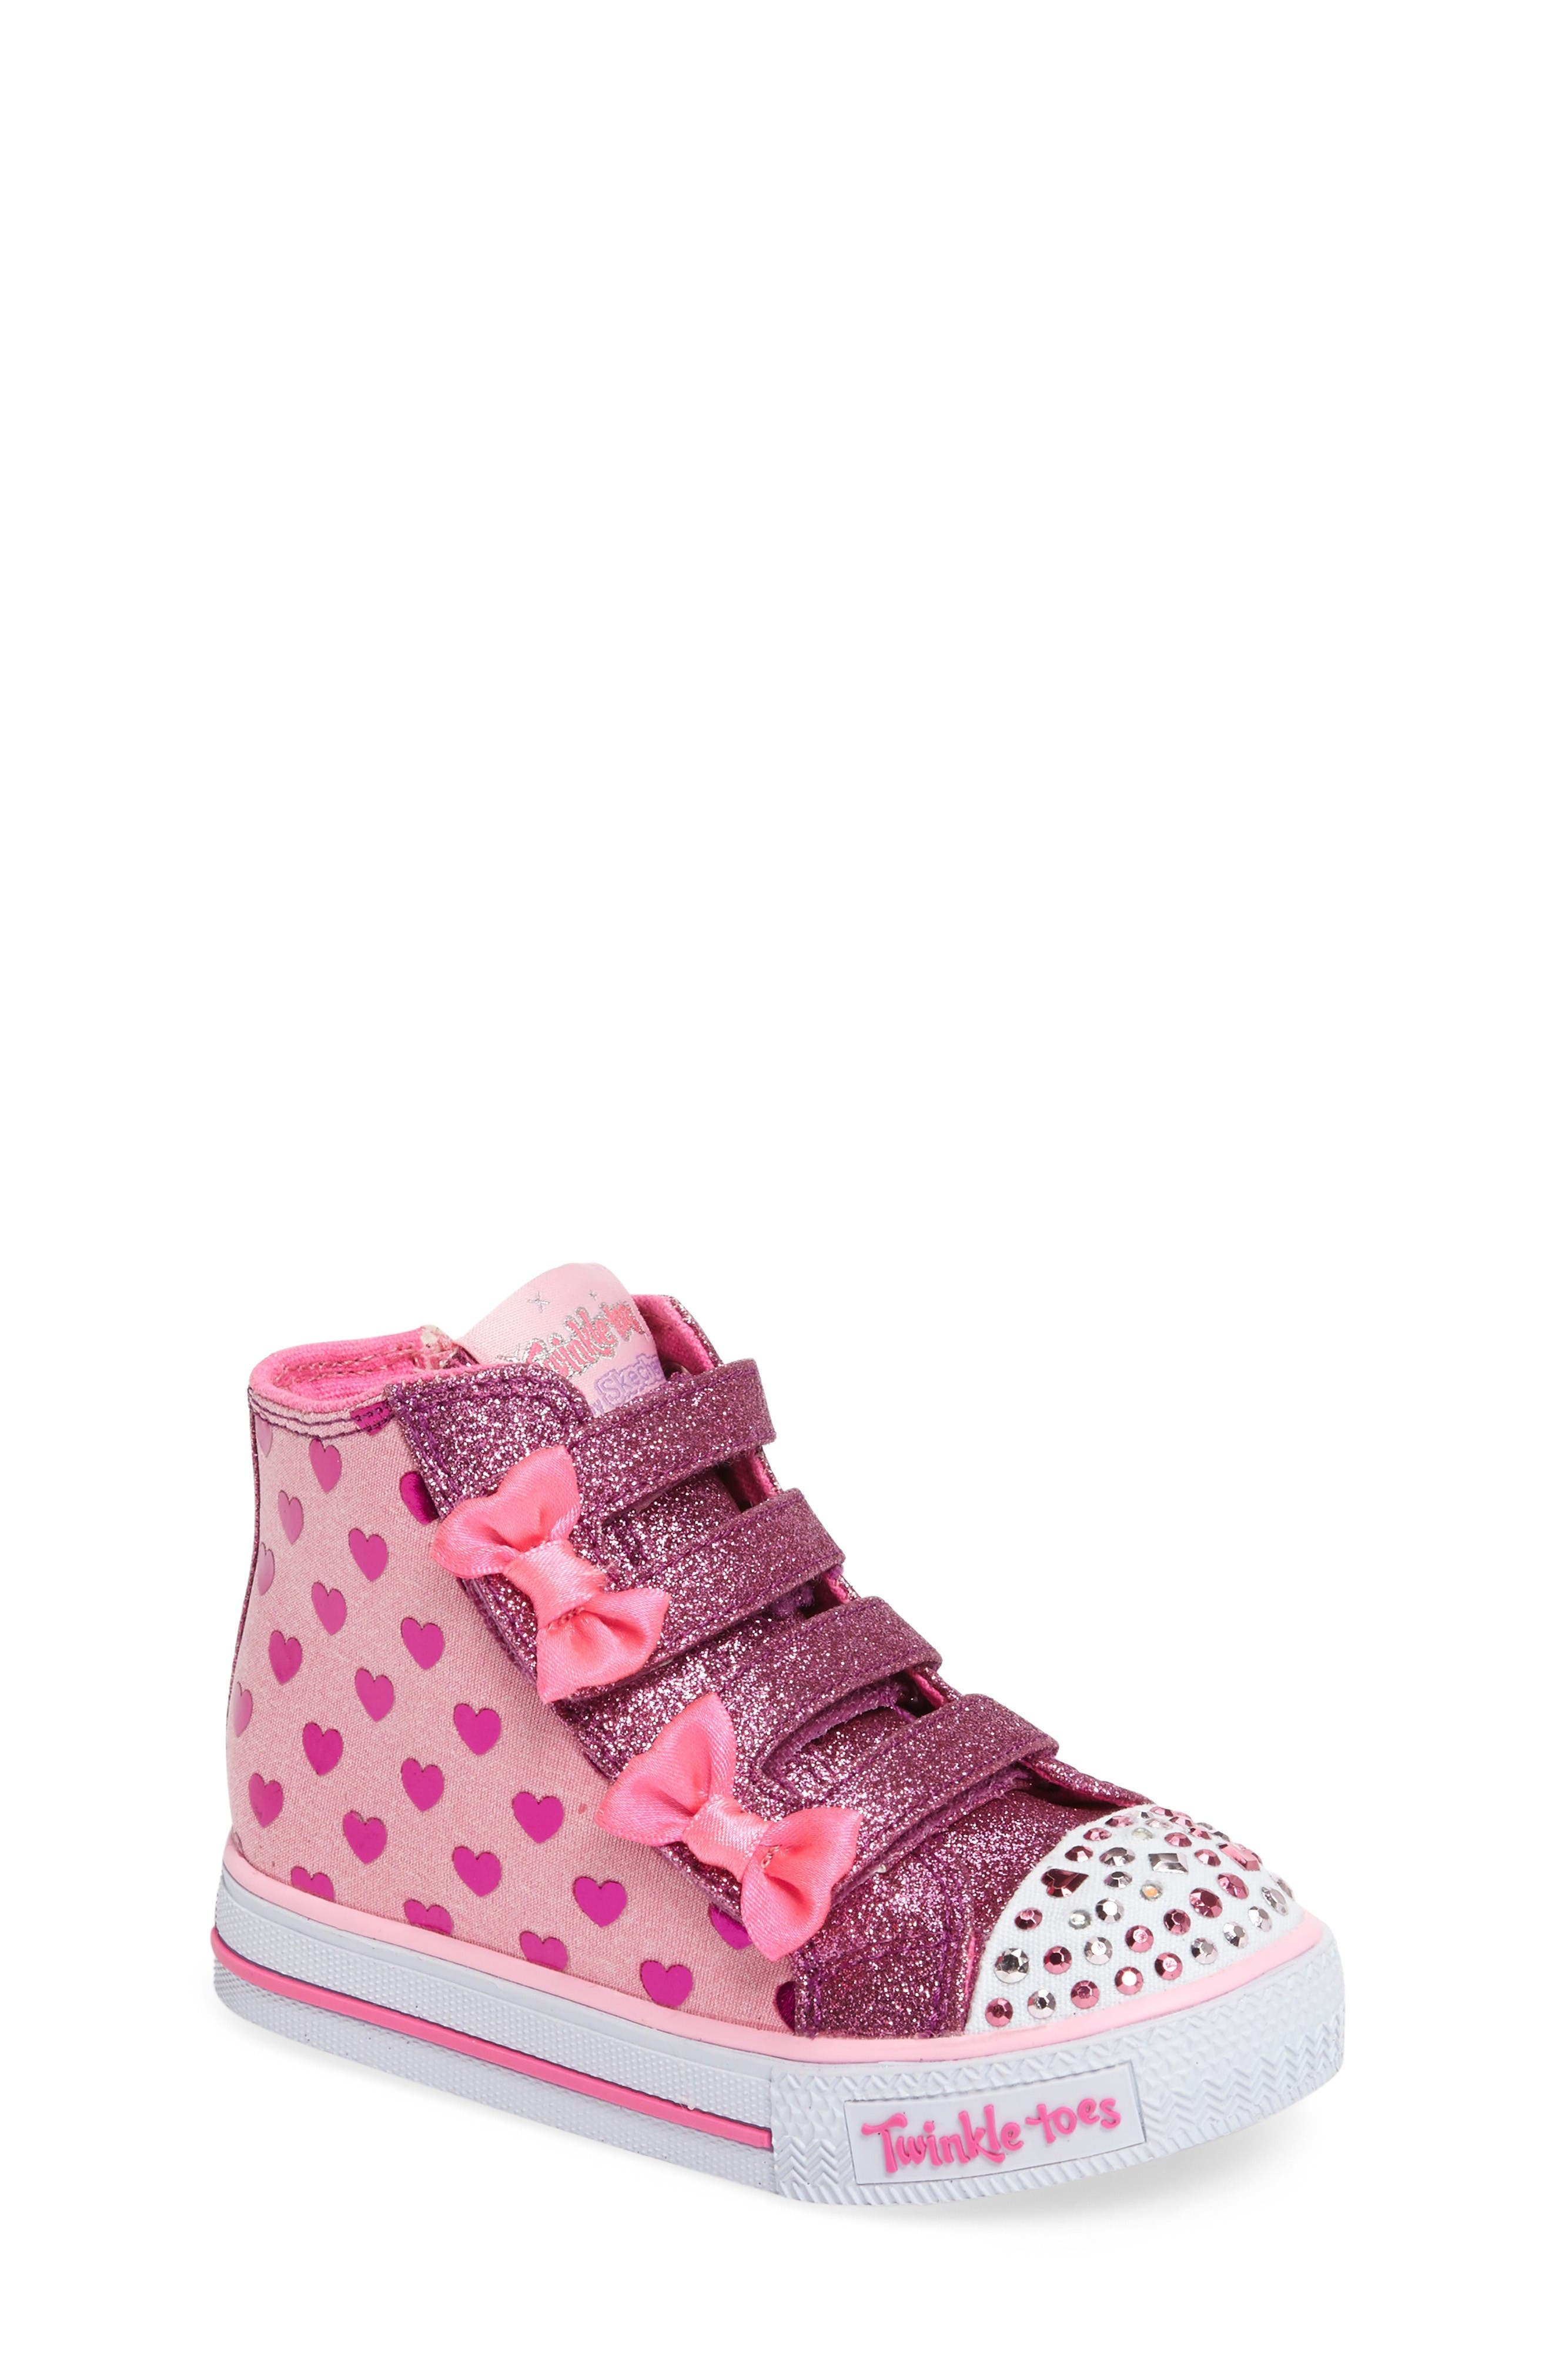 'Twinkle Toes - Shuffles' High Top Sneaker,                             Main thumbnail 1, color,                             Pink/ Hot Pink